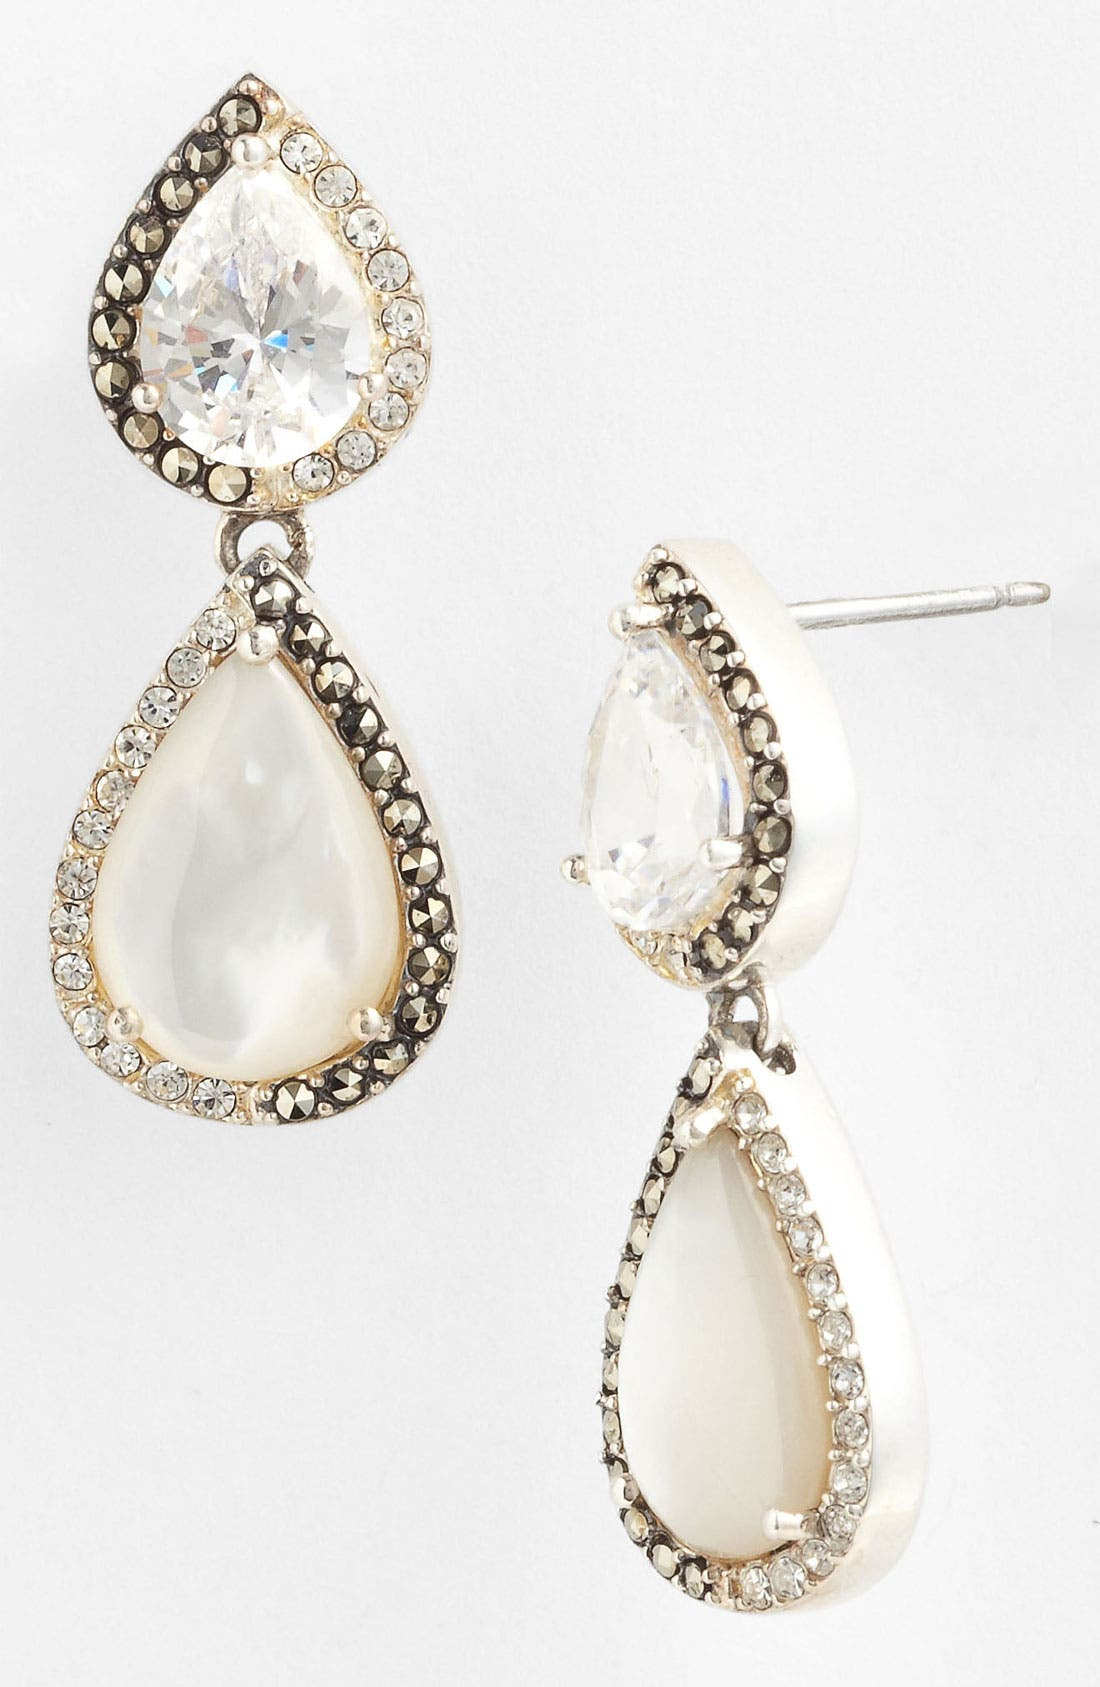 Main Image - Judith Jack 'Amore' Double Teardrop Earrings